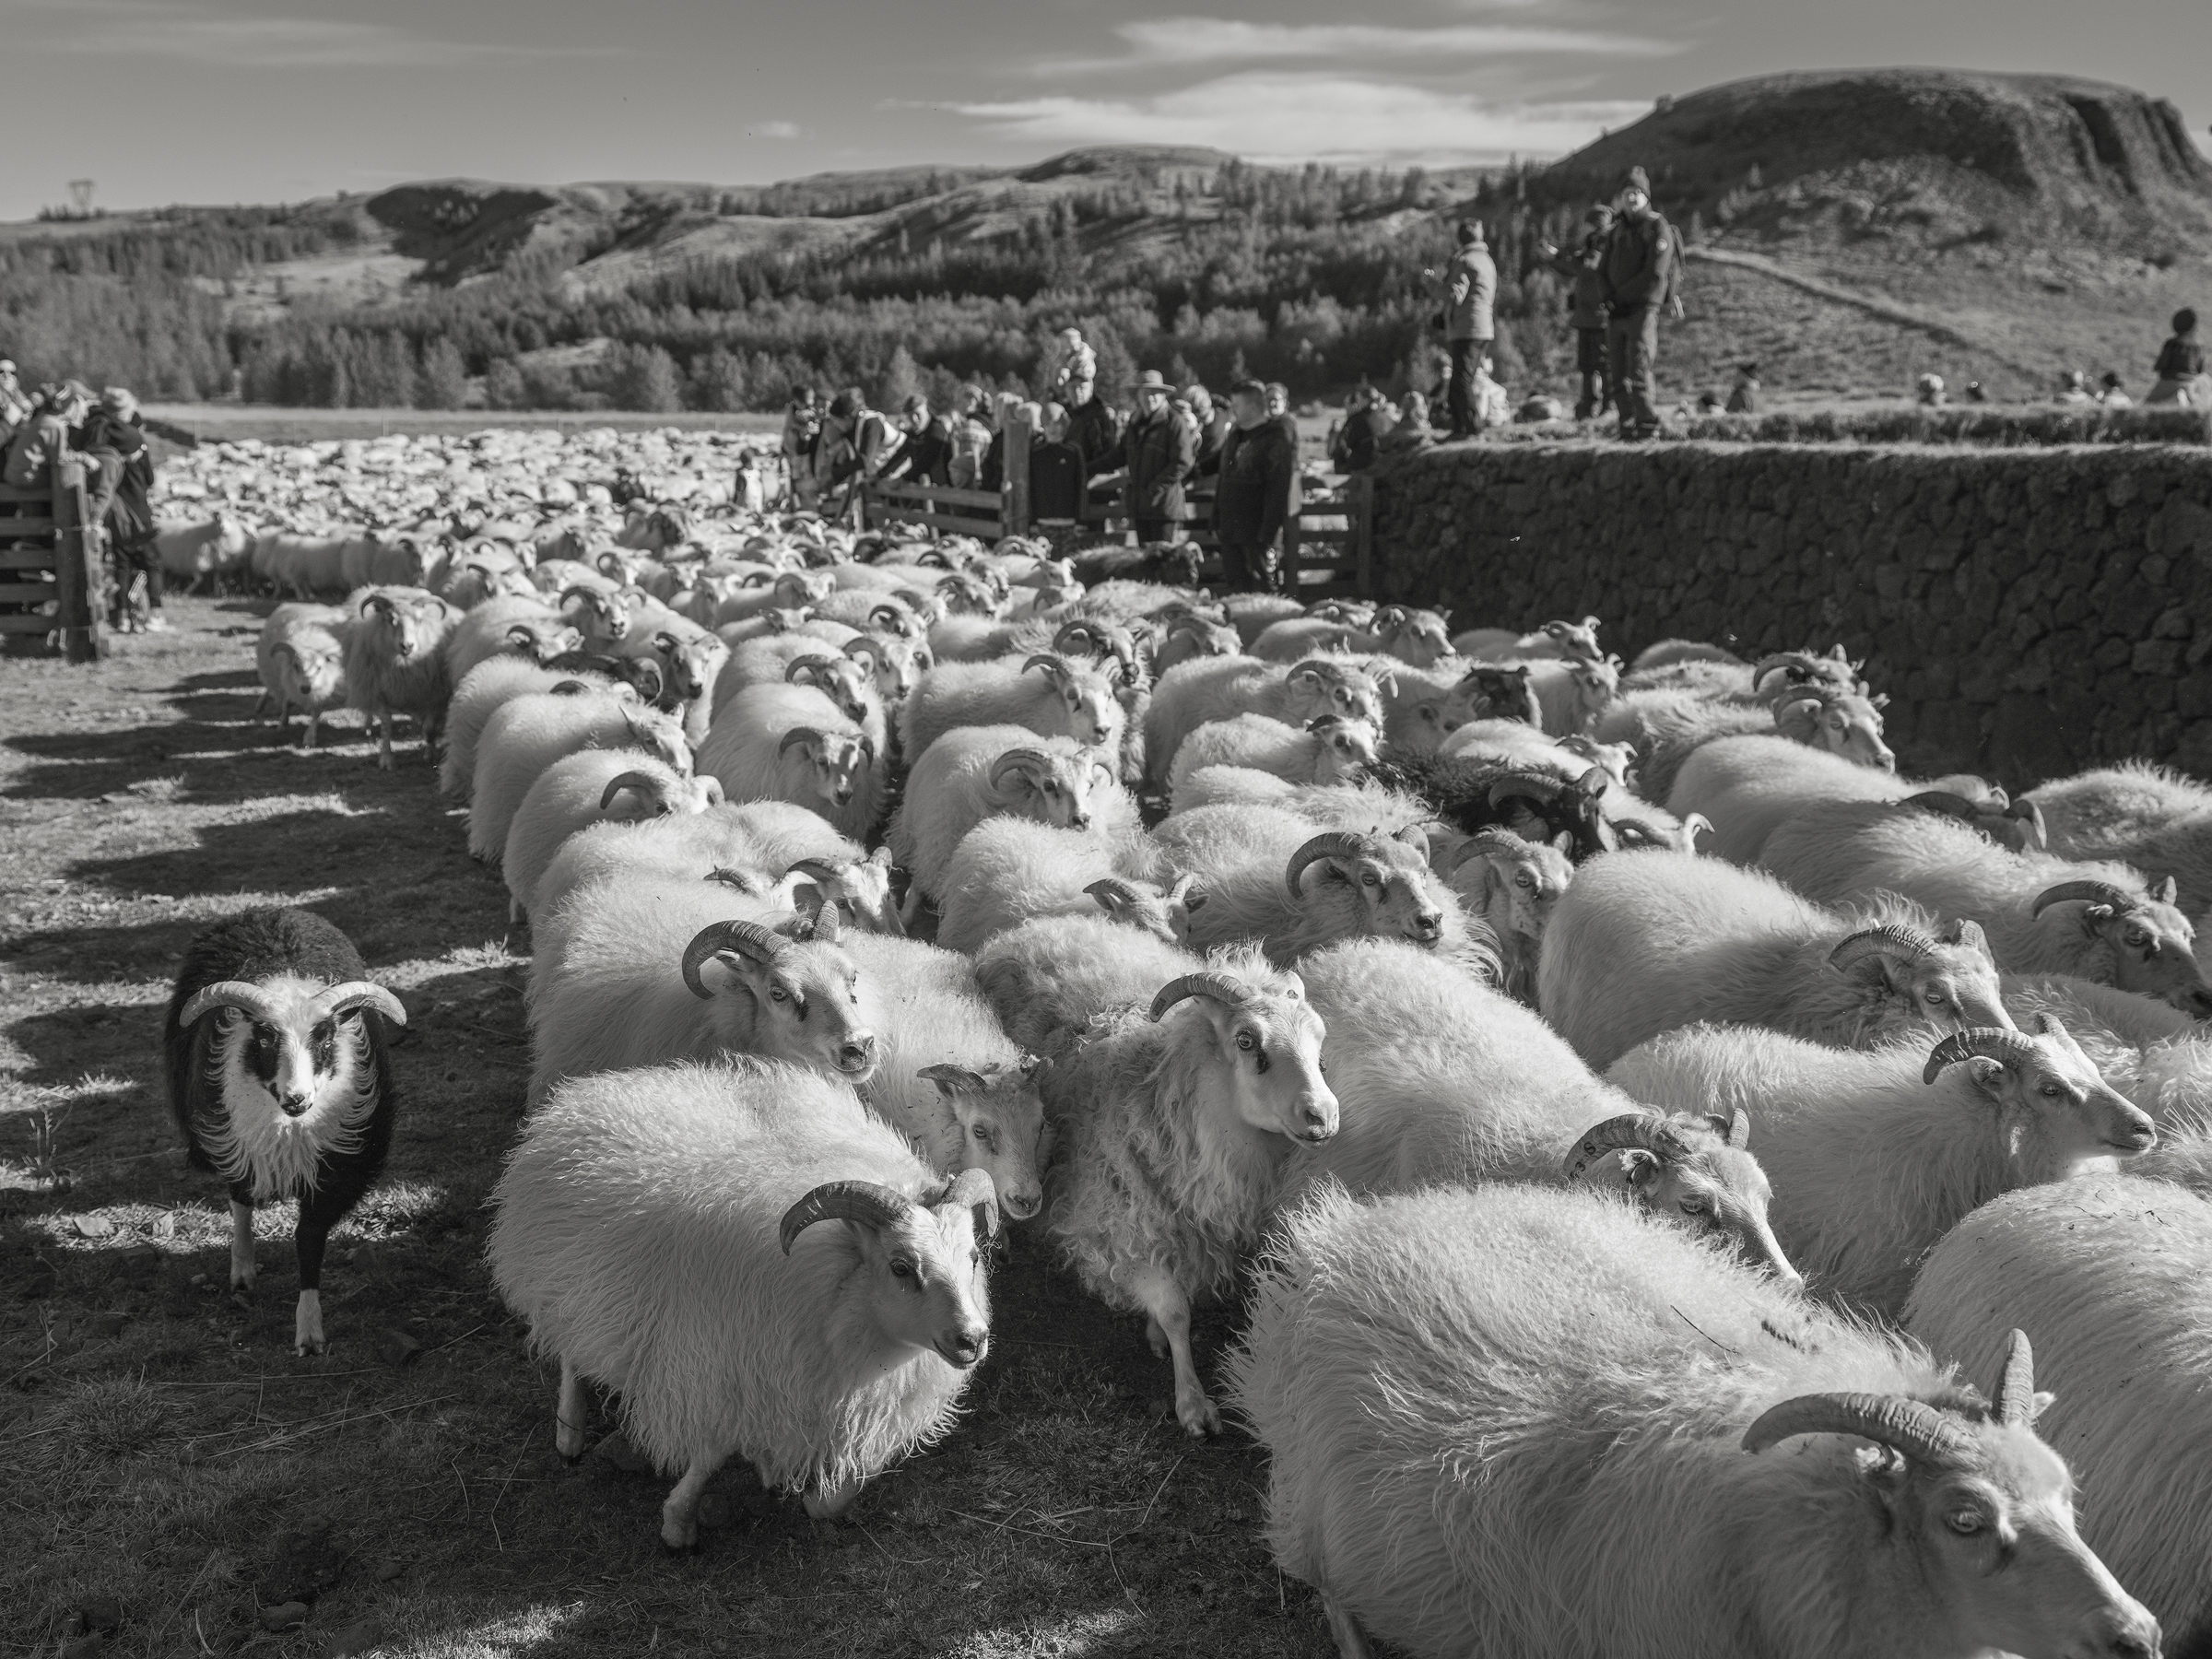 As the gates open the sheep at the front of the group rush into the  almenningur.